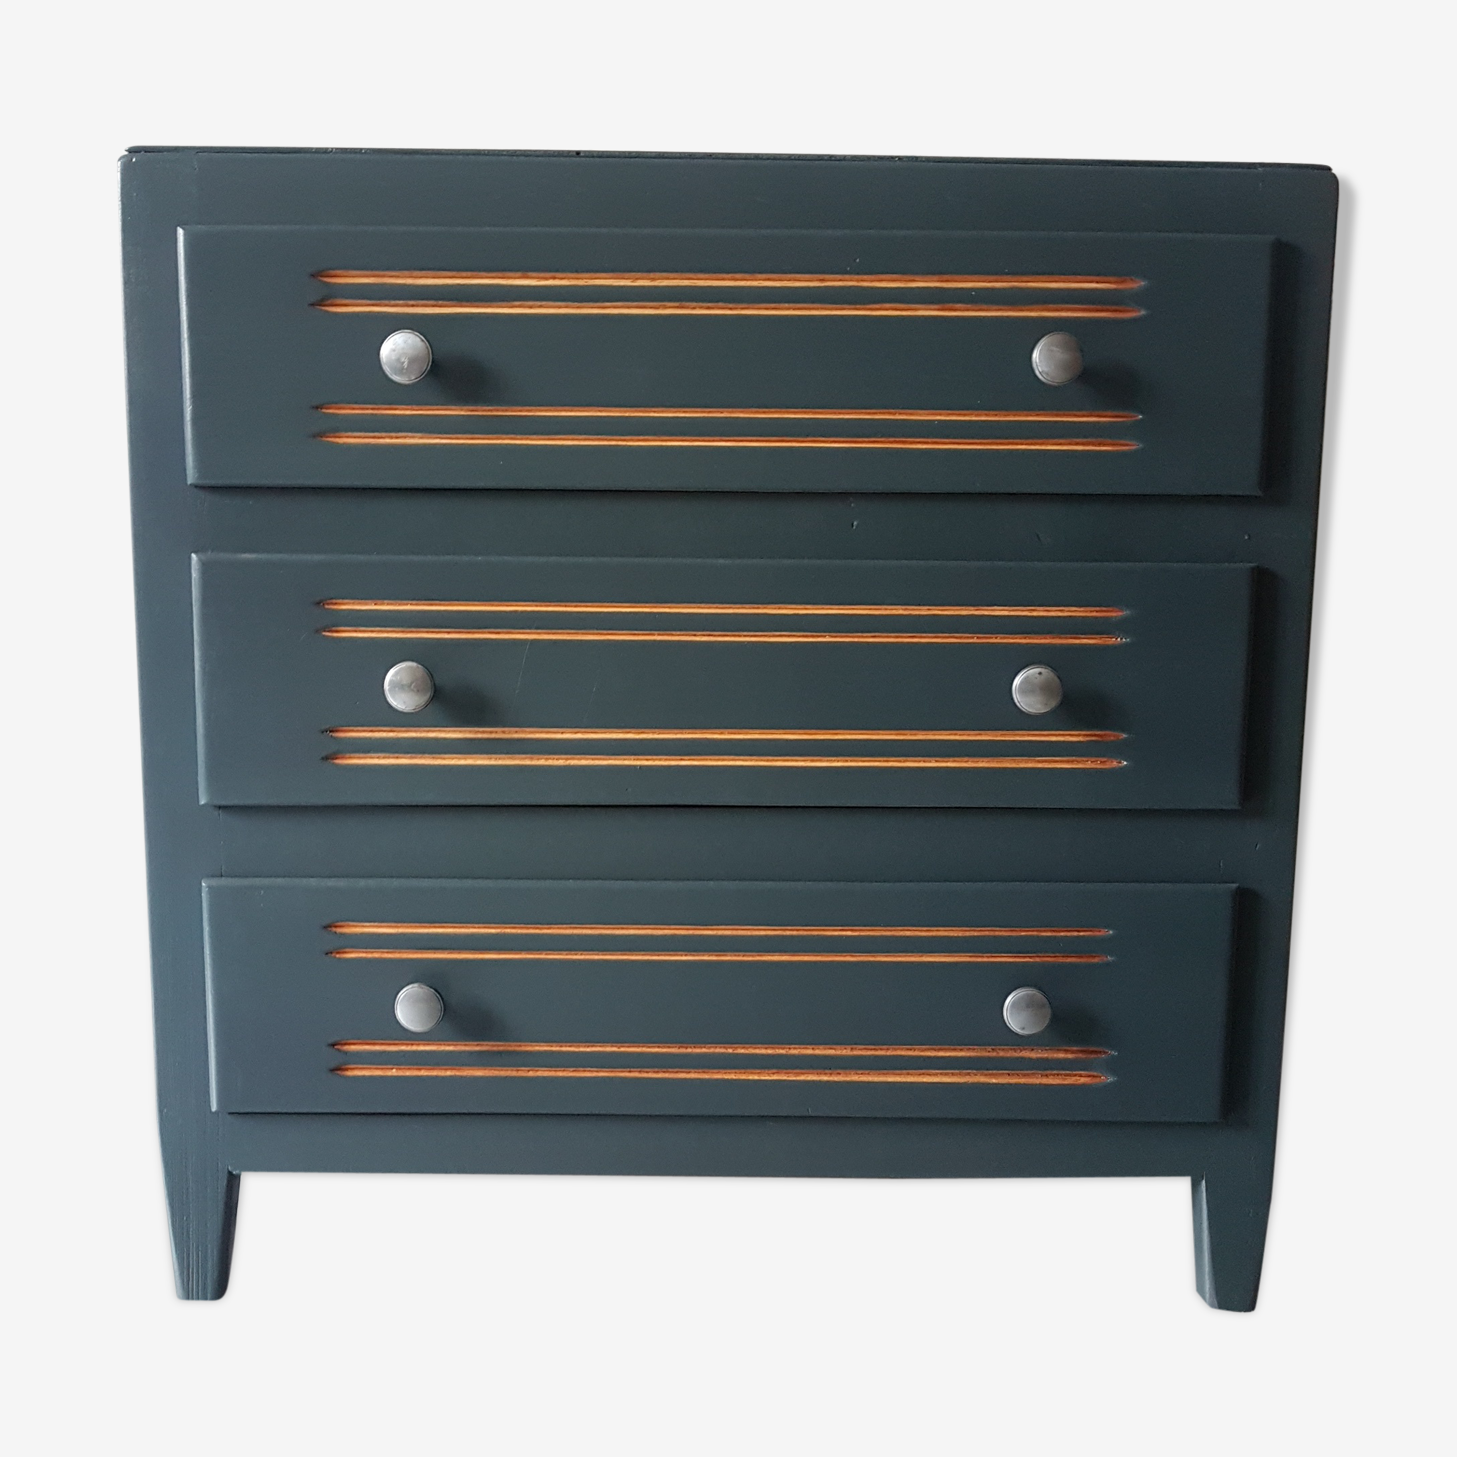 Small compact charcoal gray vintage chest of drawers